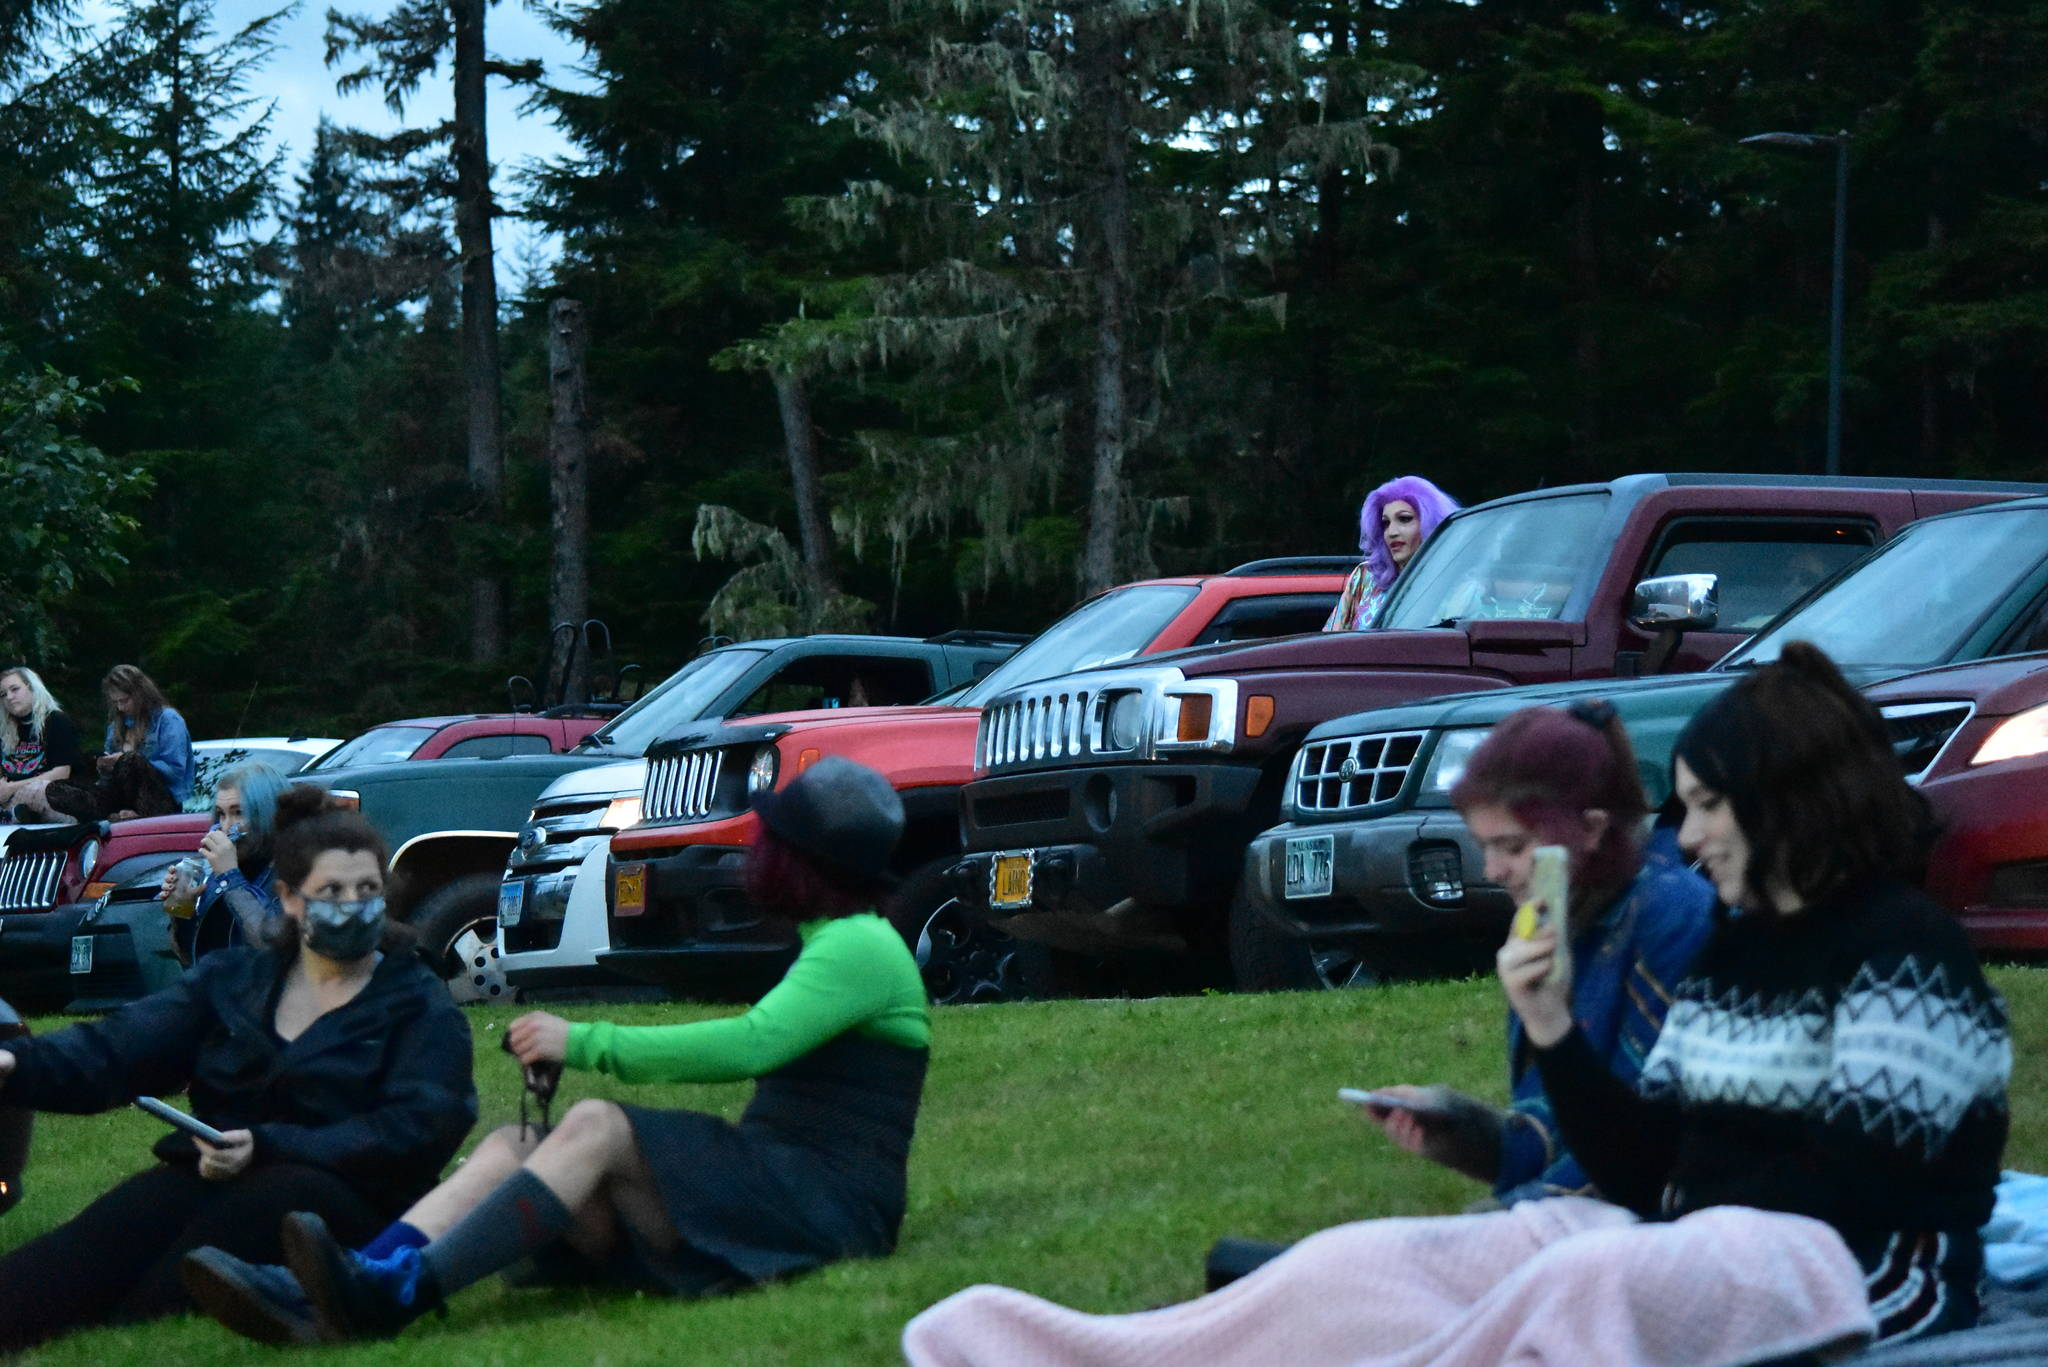 Peter Segall / Juneau Empire                                 Students and other spectators watch the Glitz Drive-in Drag Show at the University of Alaska Southeast Juneau campus parking lot on Saturday, Aug. 29, 2020. Most viewers were asked to stay in their cars.